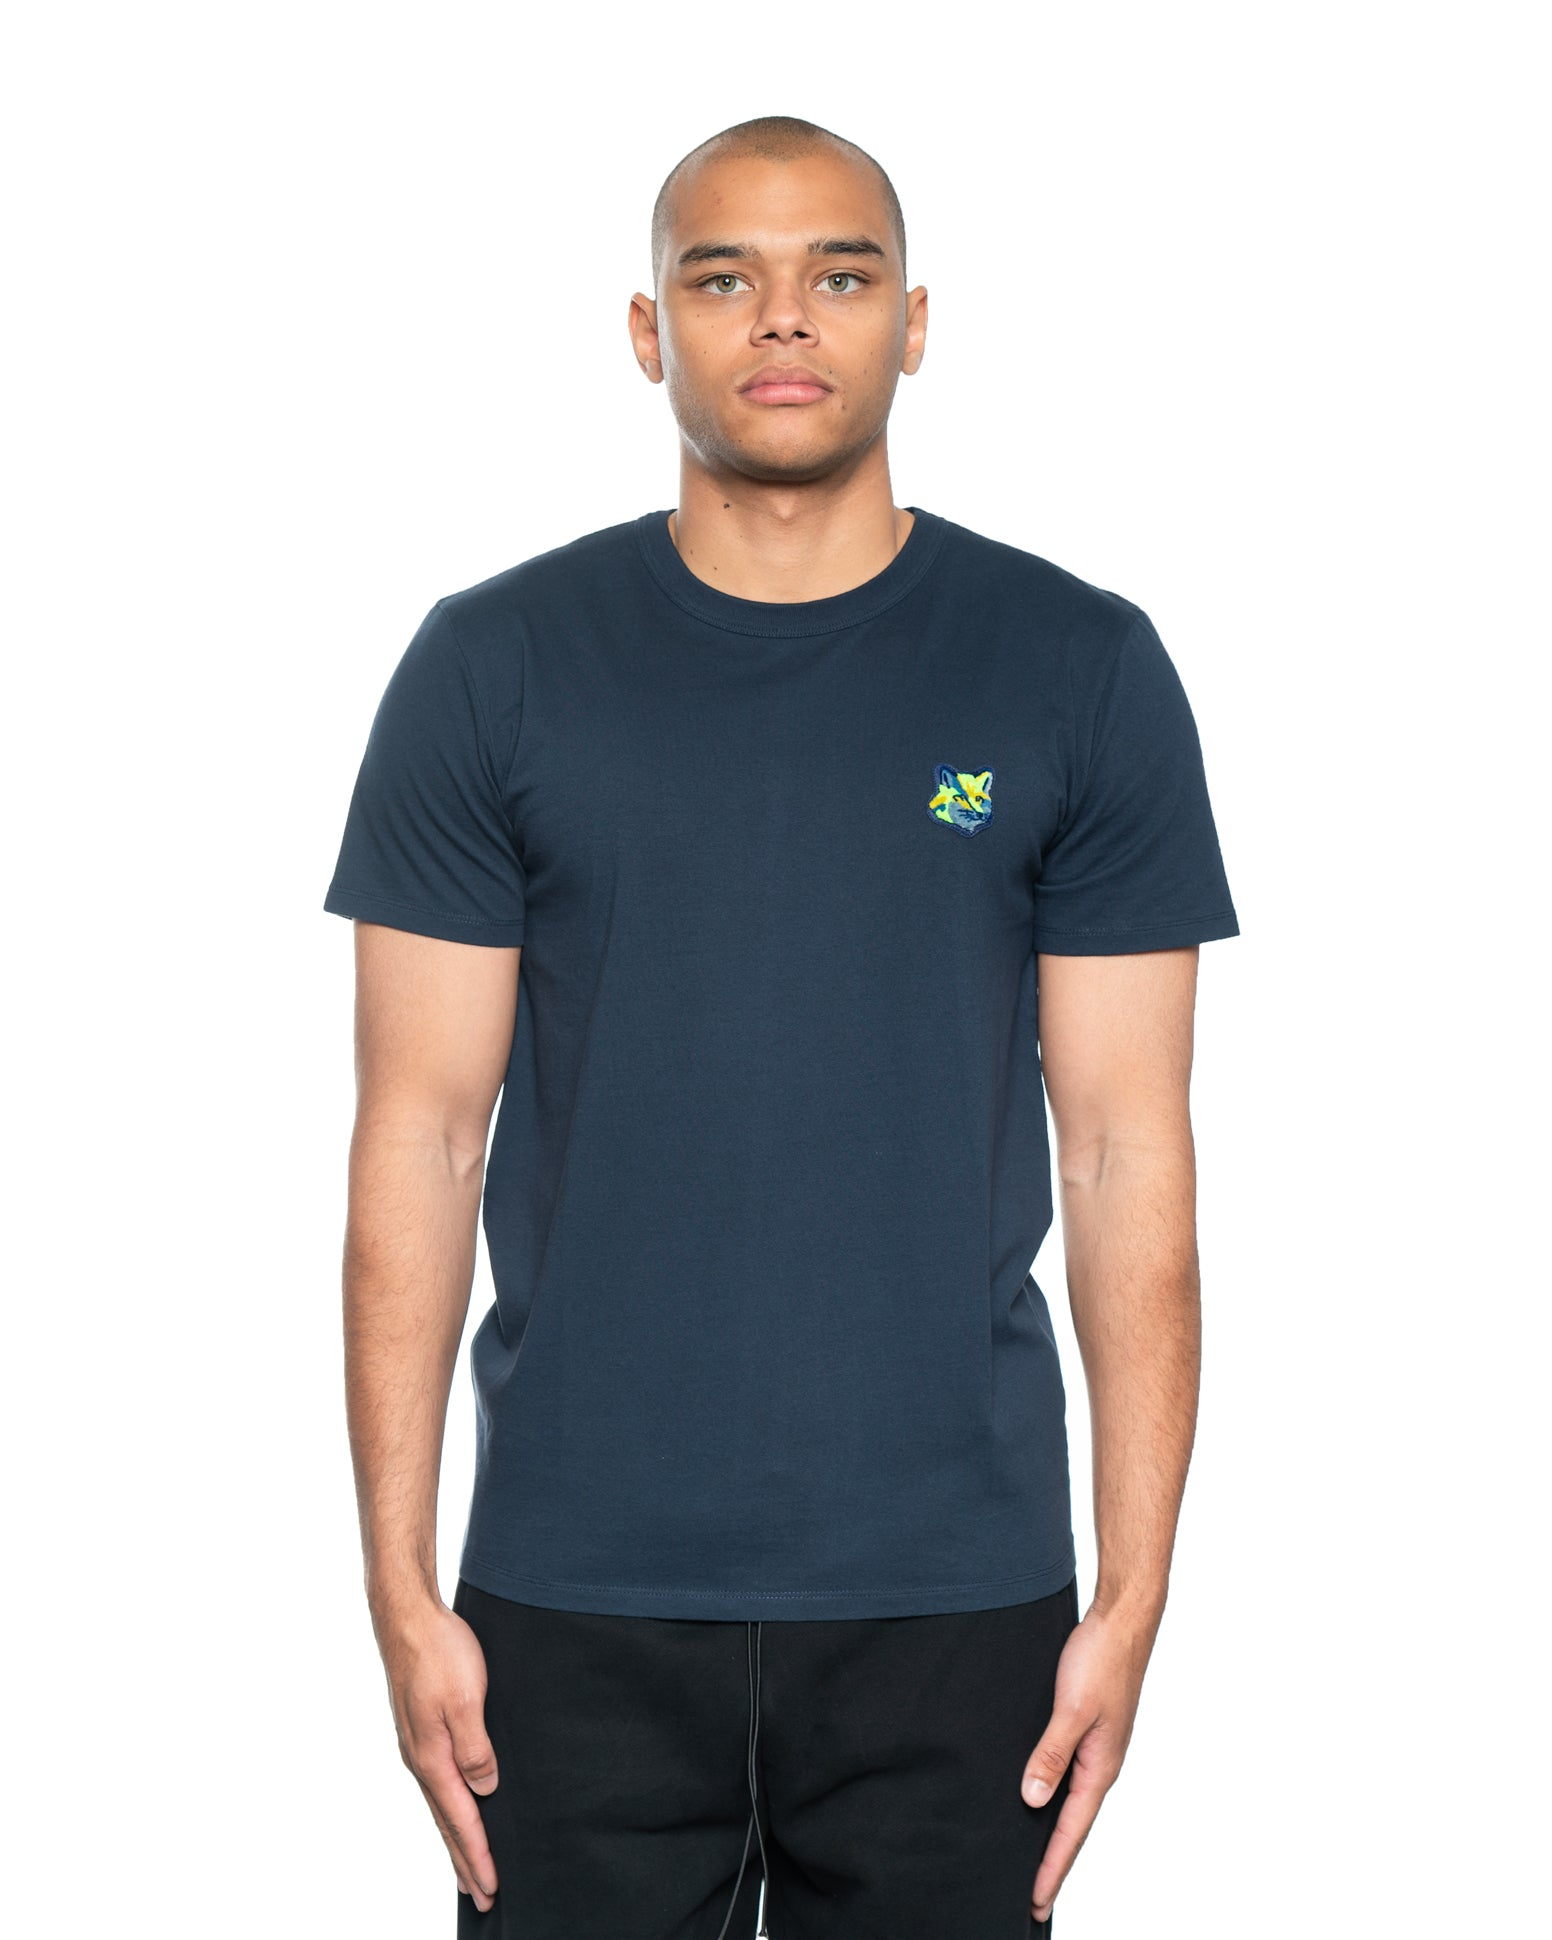 Maison Kitsune Velvet Neon Fox Head Patch Tee Navy